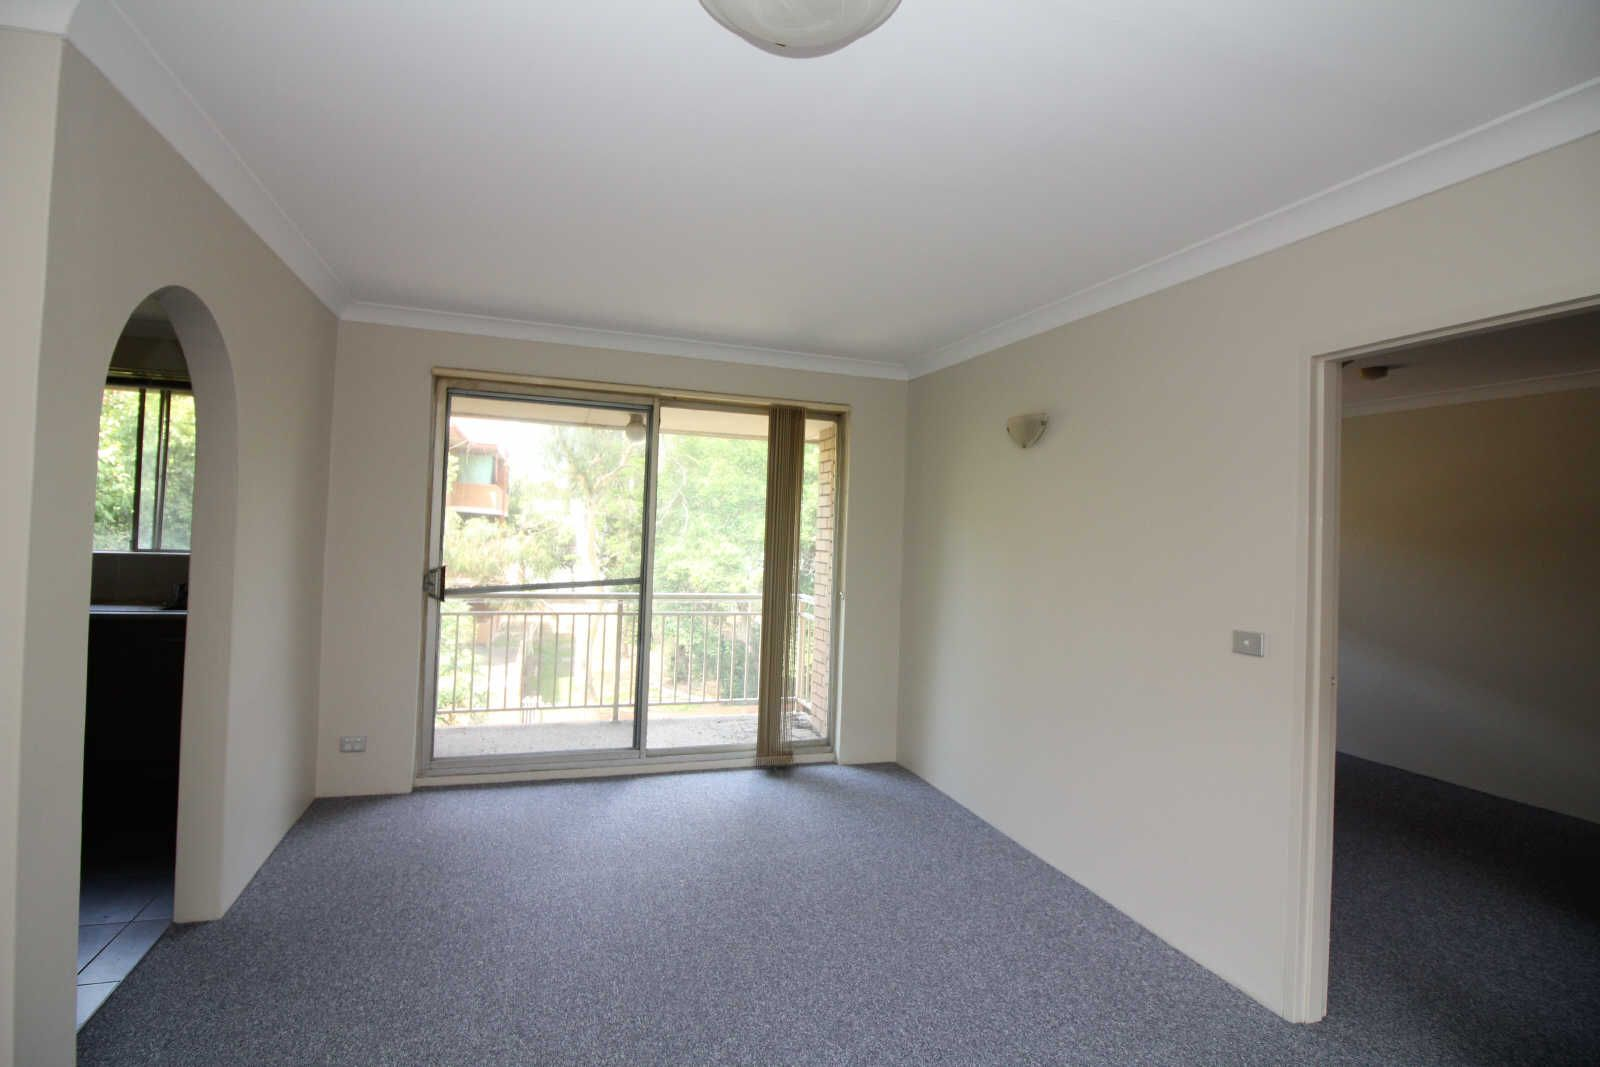 15/3-5 Kane Street, Guildford NSW 2161, Image 2